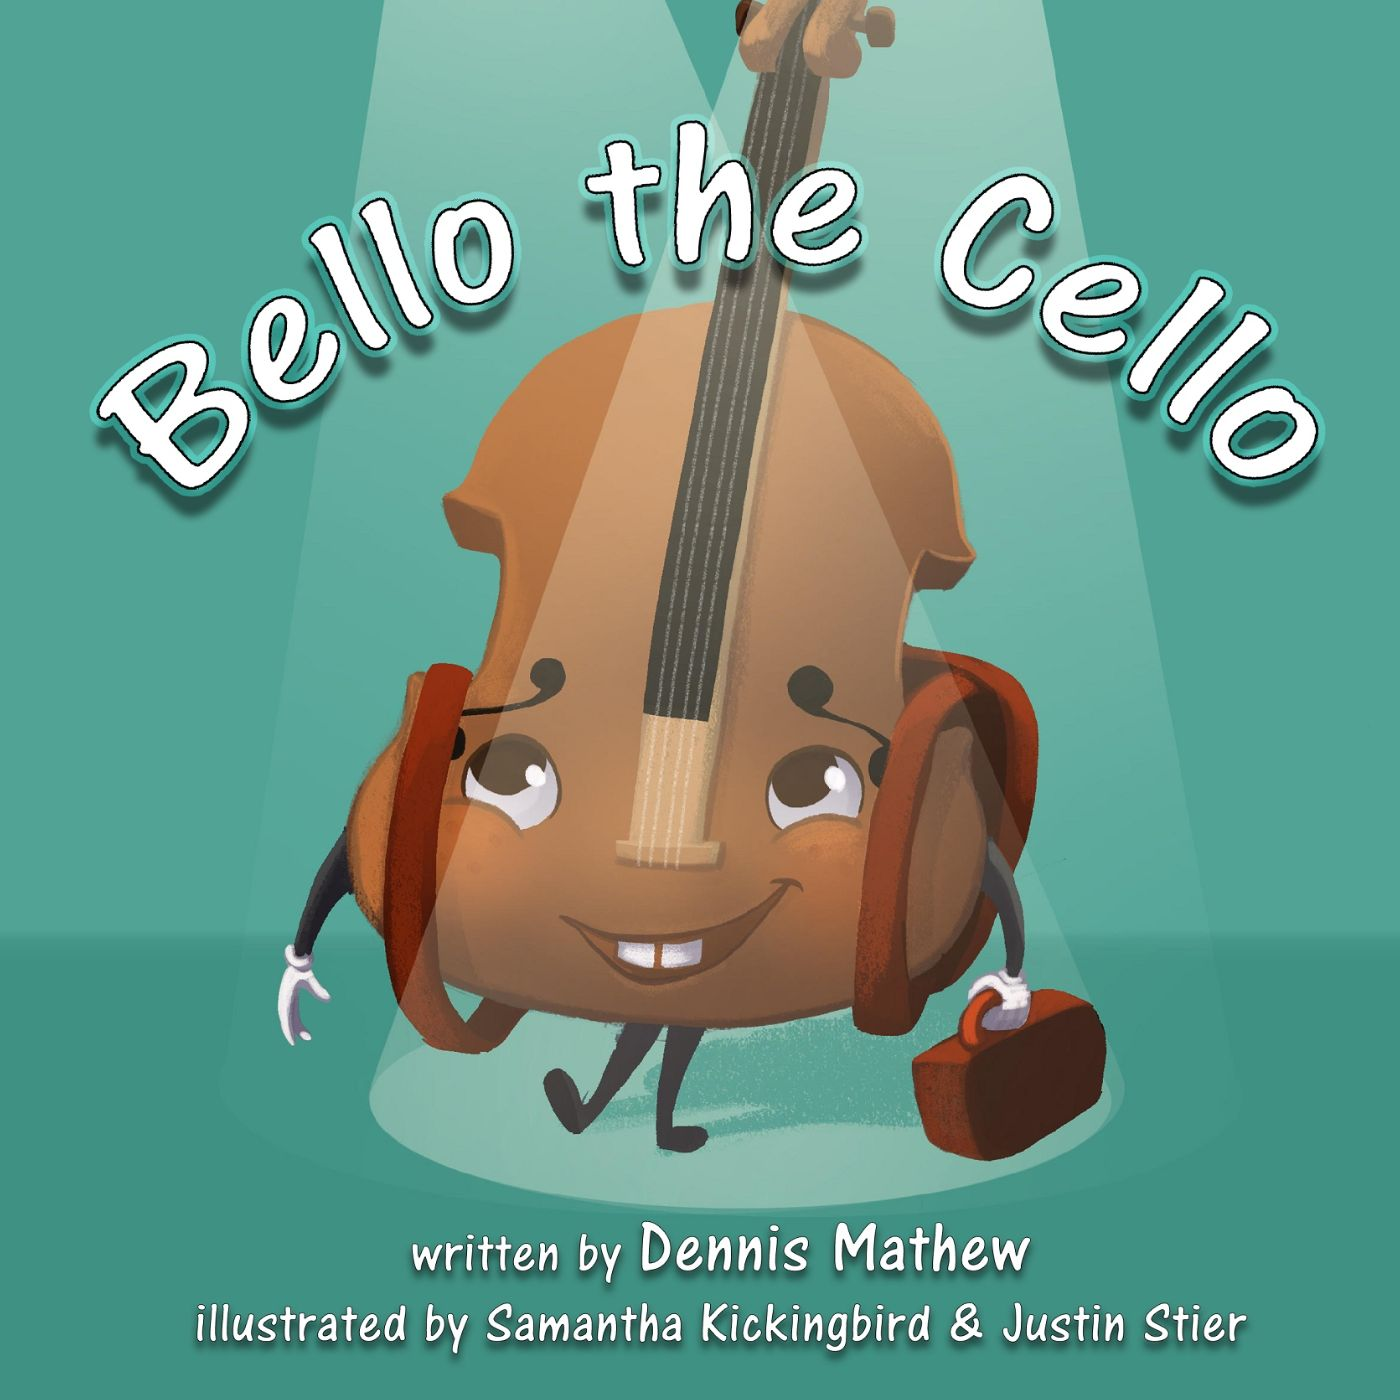 Purchase a Book - We recently partnered with local author, Dennis Mathew, who will donate $5 per book sold, when you choose Acord Food Pantry at check out. Please use this link to preview and order this adorable book,Bello the Cello- a wonderful story about learning to find your own